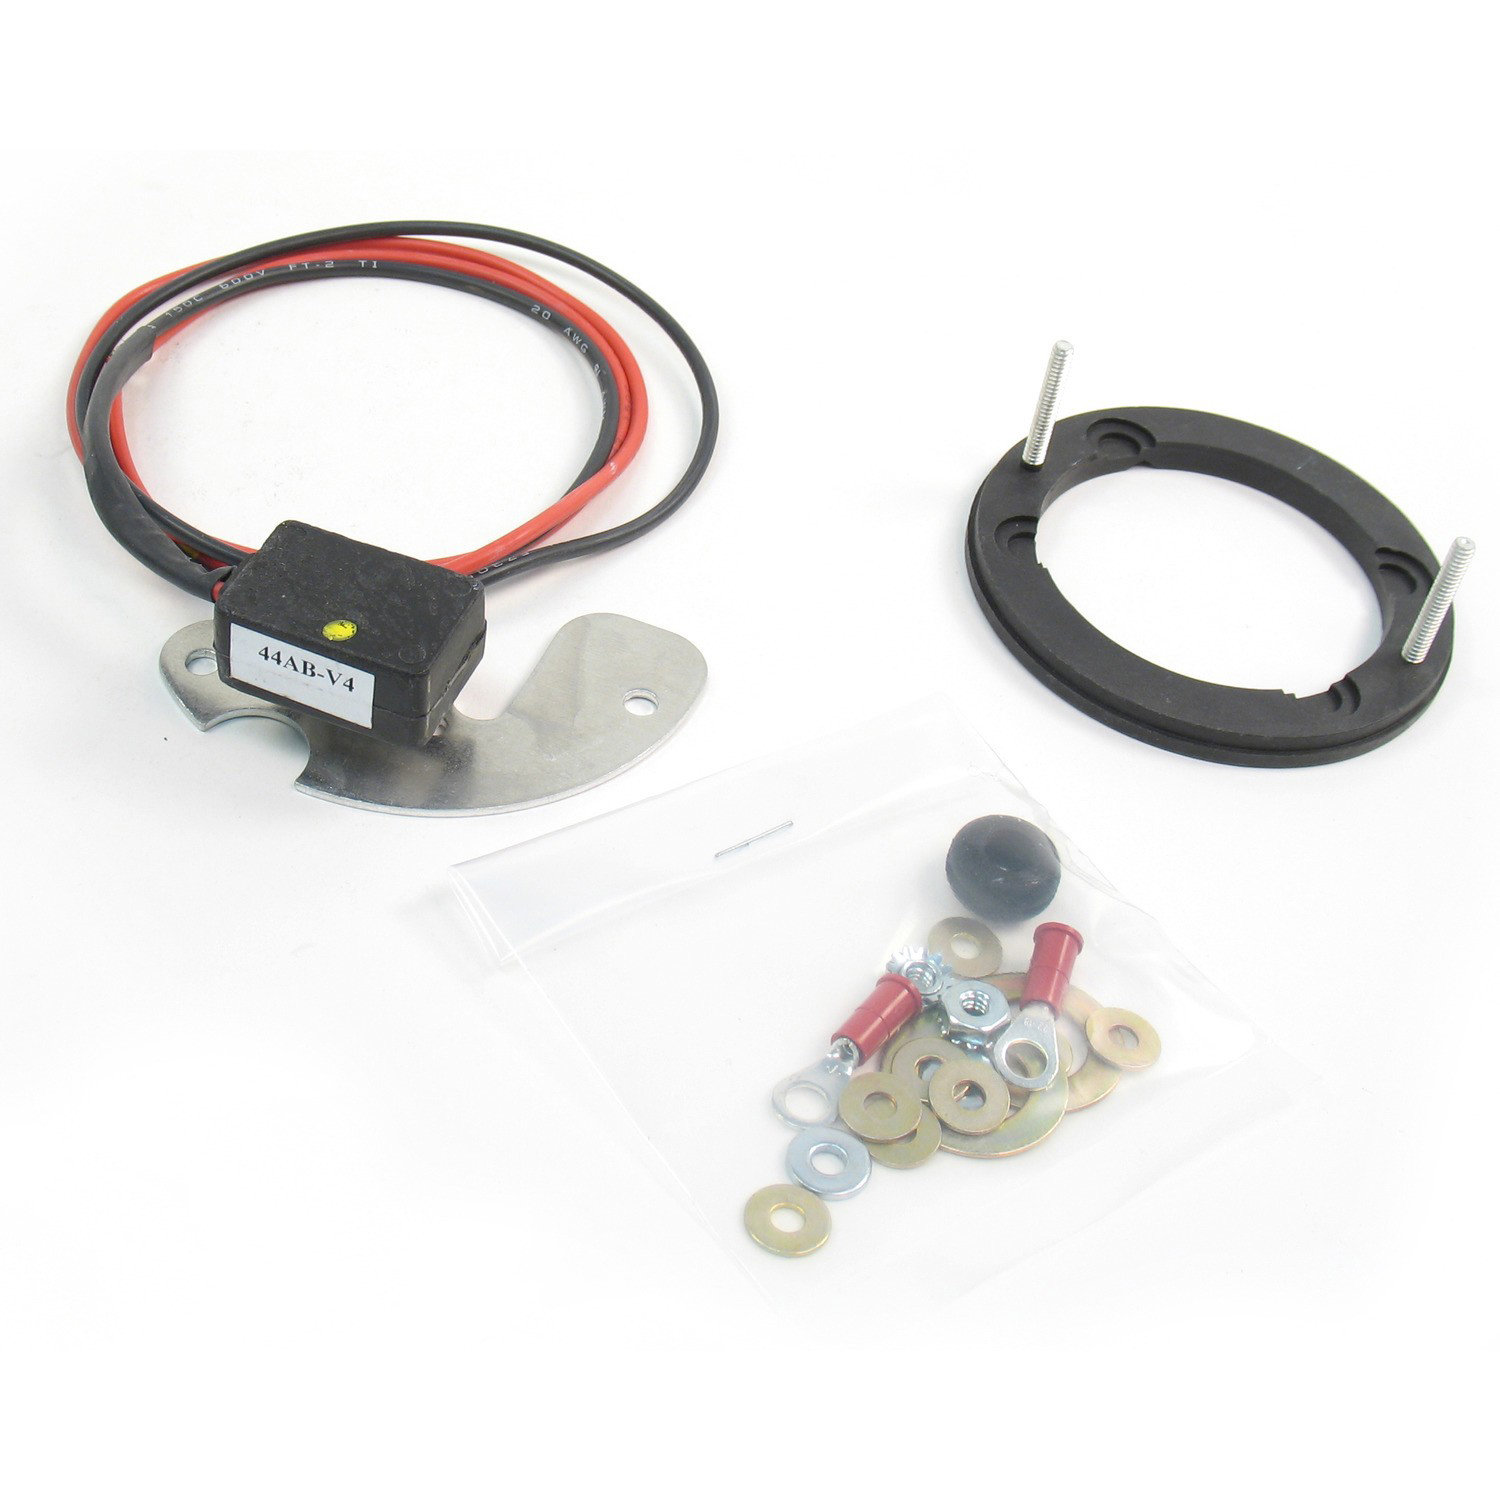 hight resolution of pertronix performance 1181 ignitor ignition system for 72 74 jeep cj jeep yj ignition wiring diagram jeep amc v8 ignition wiring